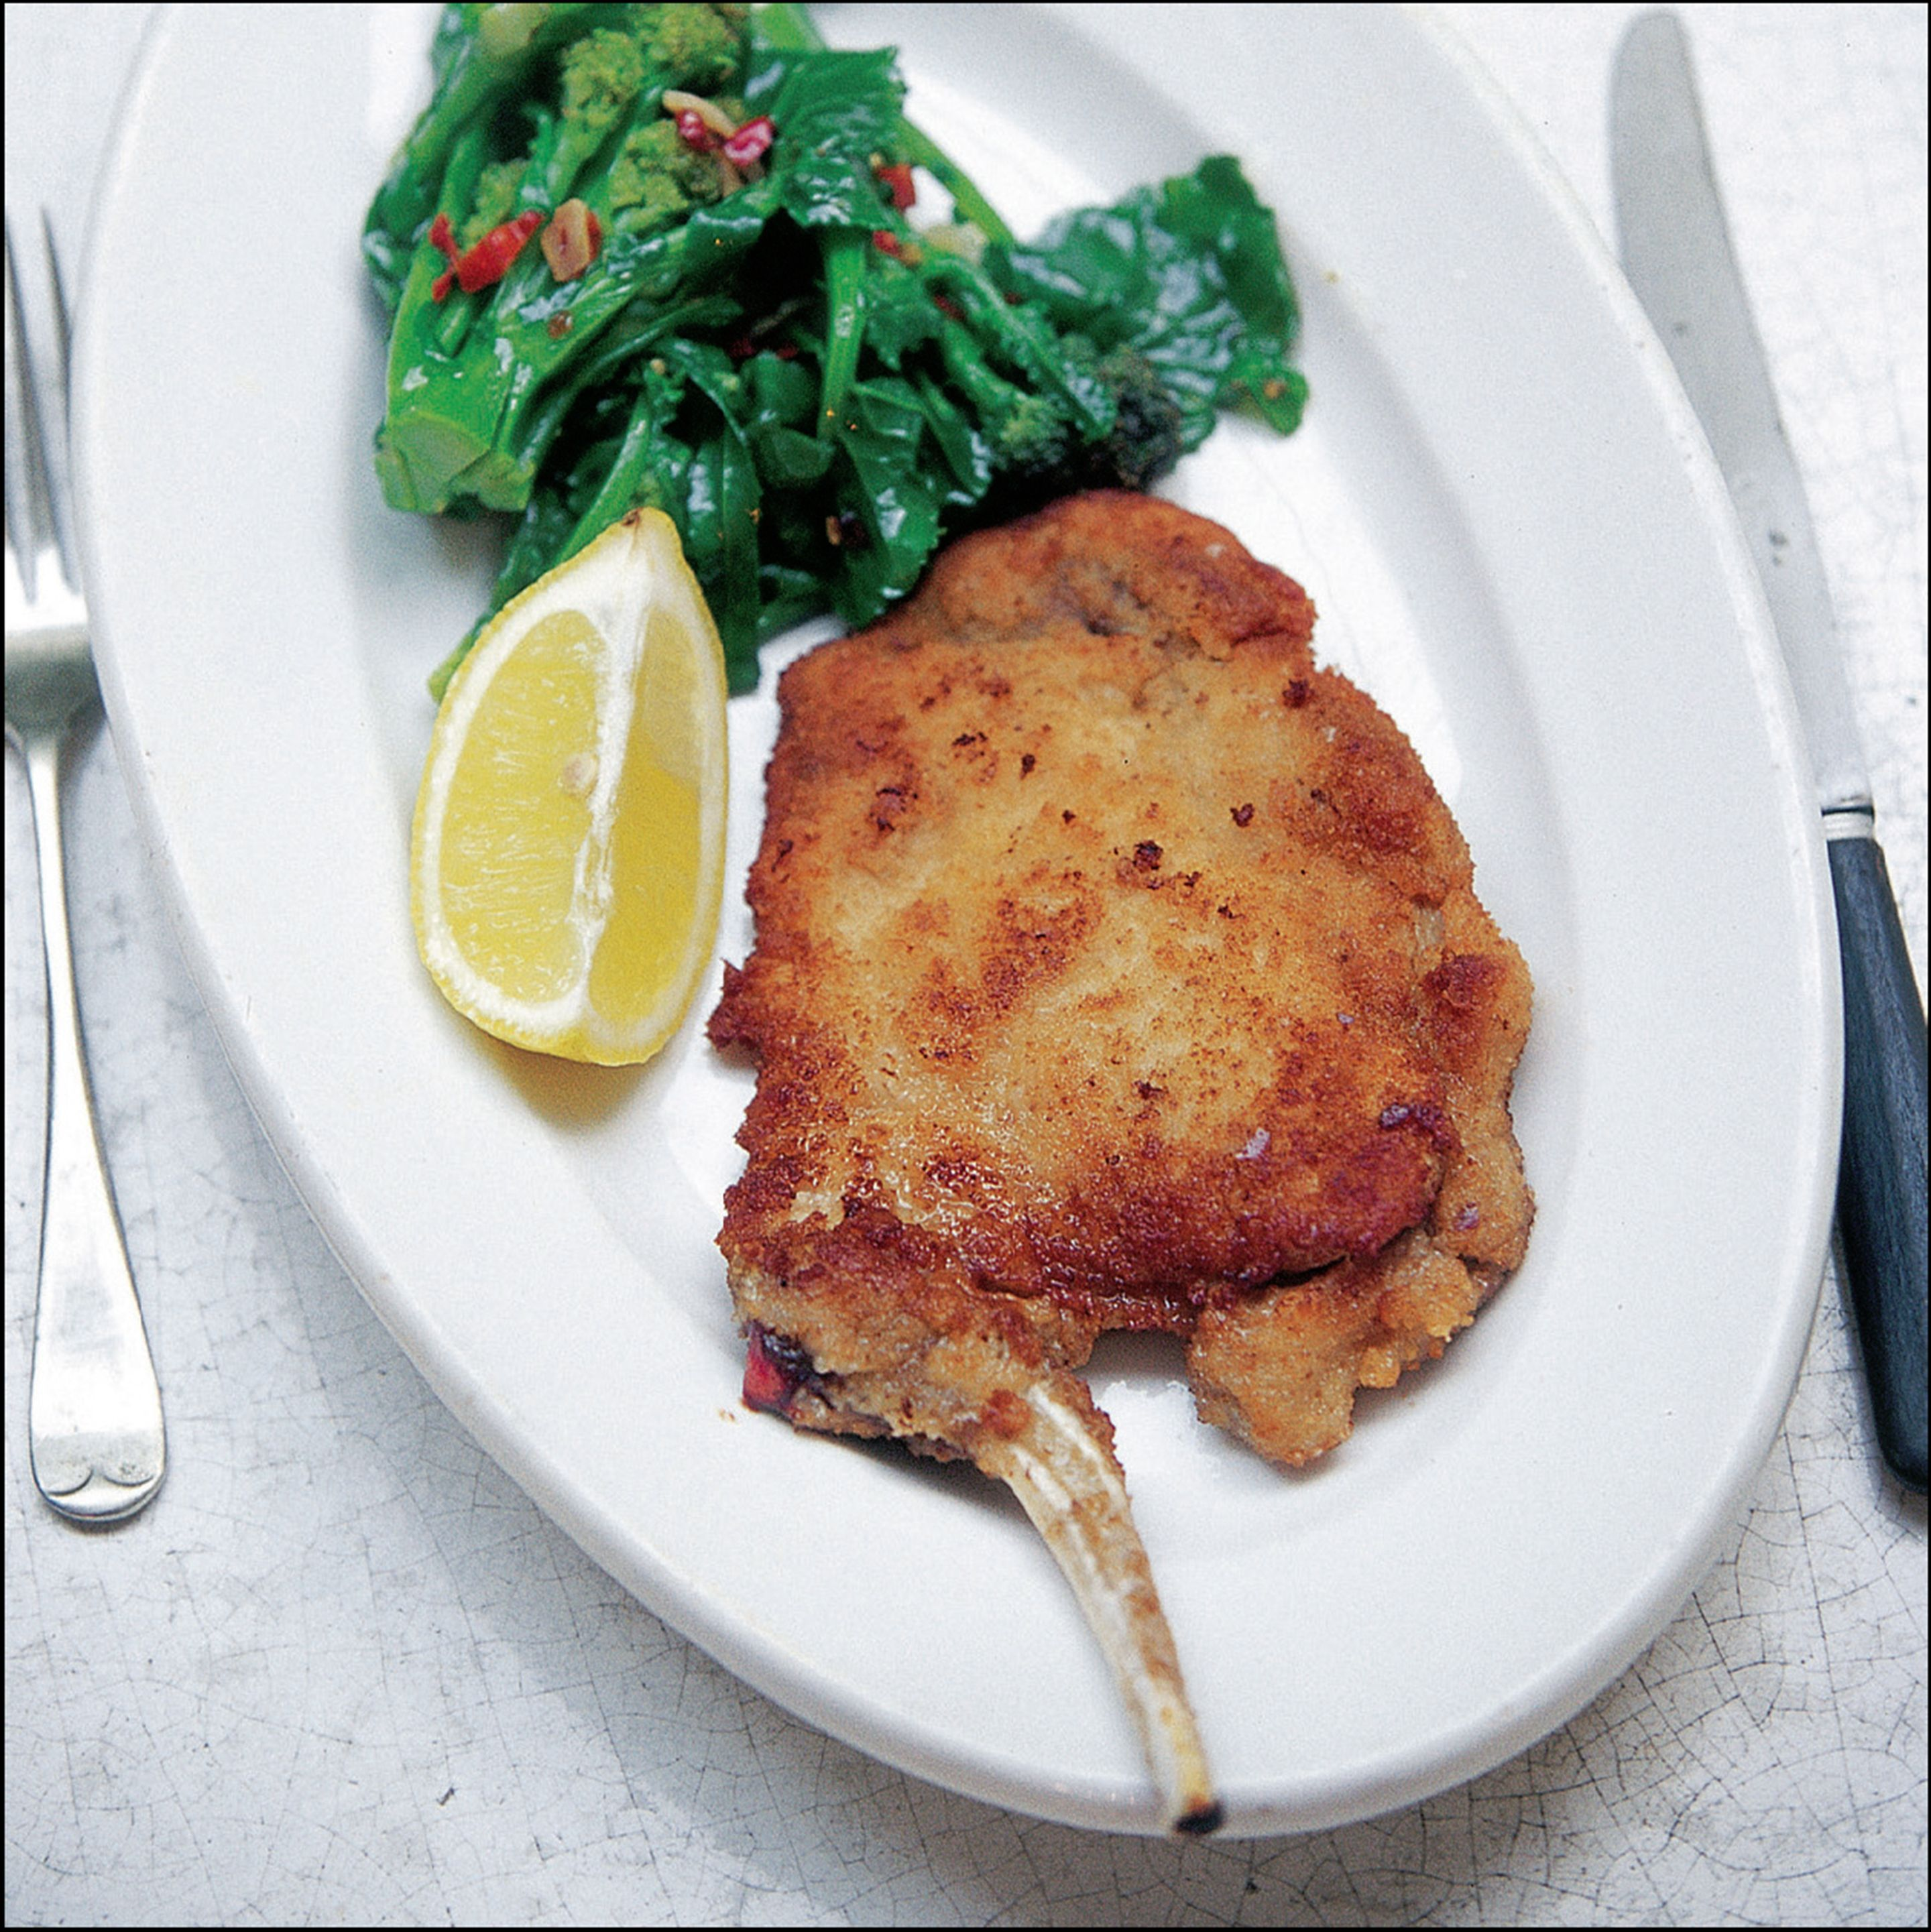 Milanese breaded pork cutlet